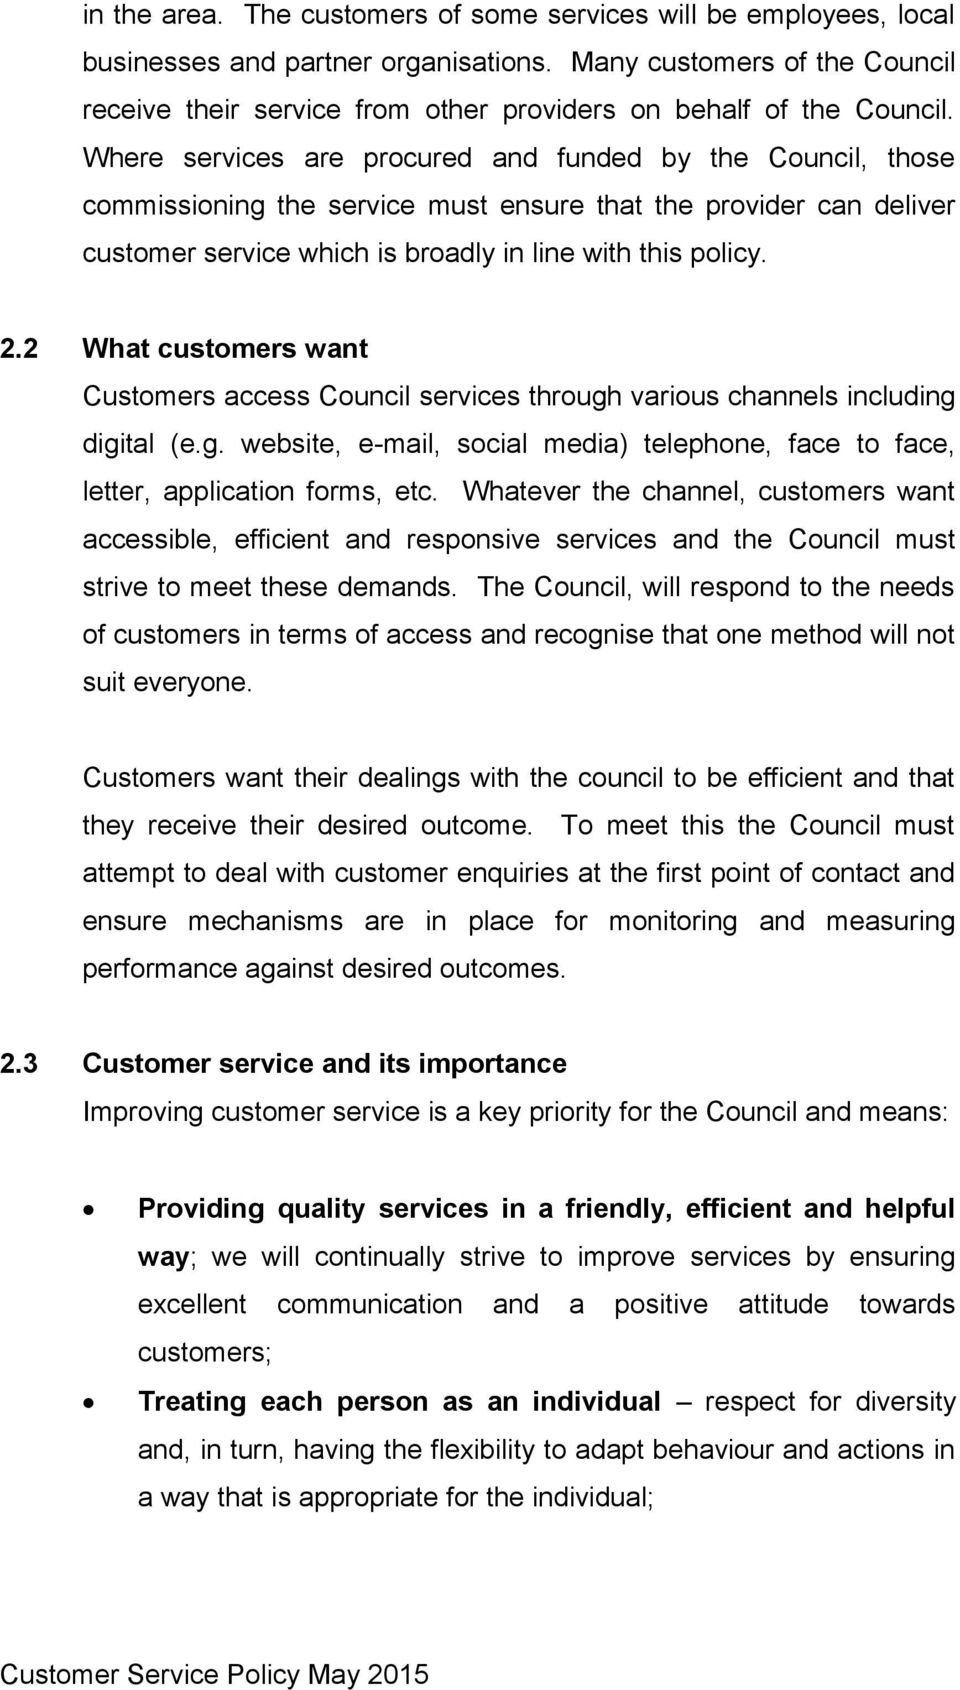 Where services are procured and funded by the Council, those commissioning the service must ensure that the provider can deliver customer service which is broadly in line with this policy. 2.